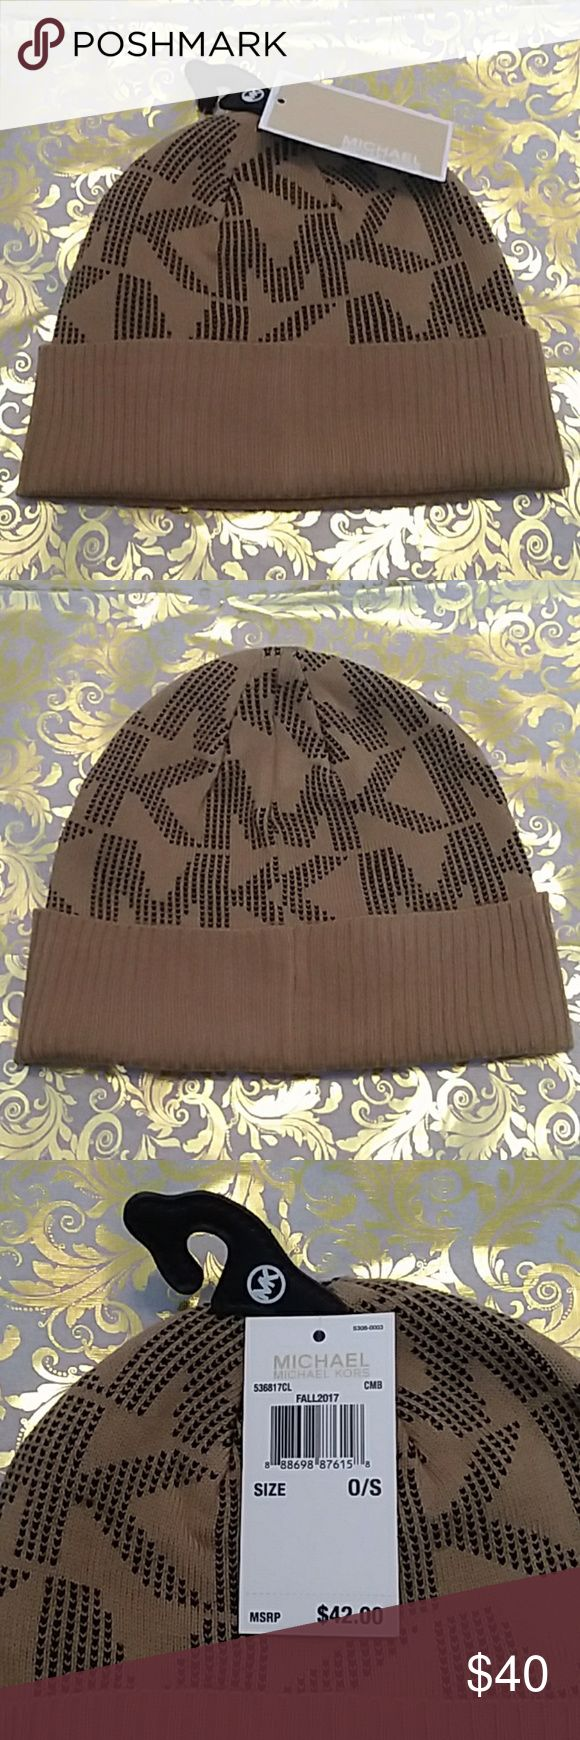 Michael Kors Mocha and Black Beanie NWT Fall 2017 collection Michael Kors beanie.  A cute, warm knit winter hat with the signature MK woven into it. Mocha, tan or brown body with black details.  One size, 100% acrylic.  Offers and questions are encouraged! MICHAEL Michael Kors Accessories Hats